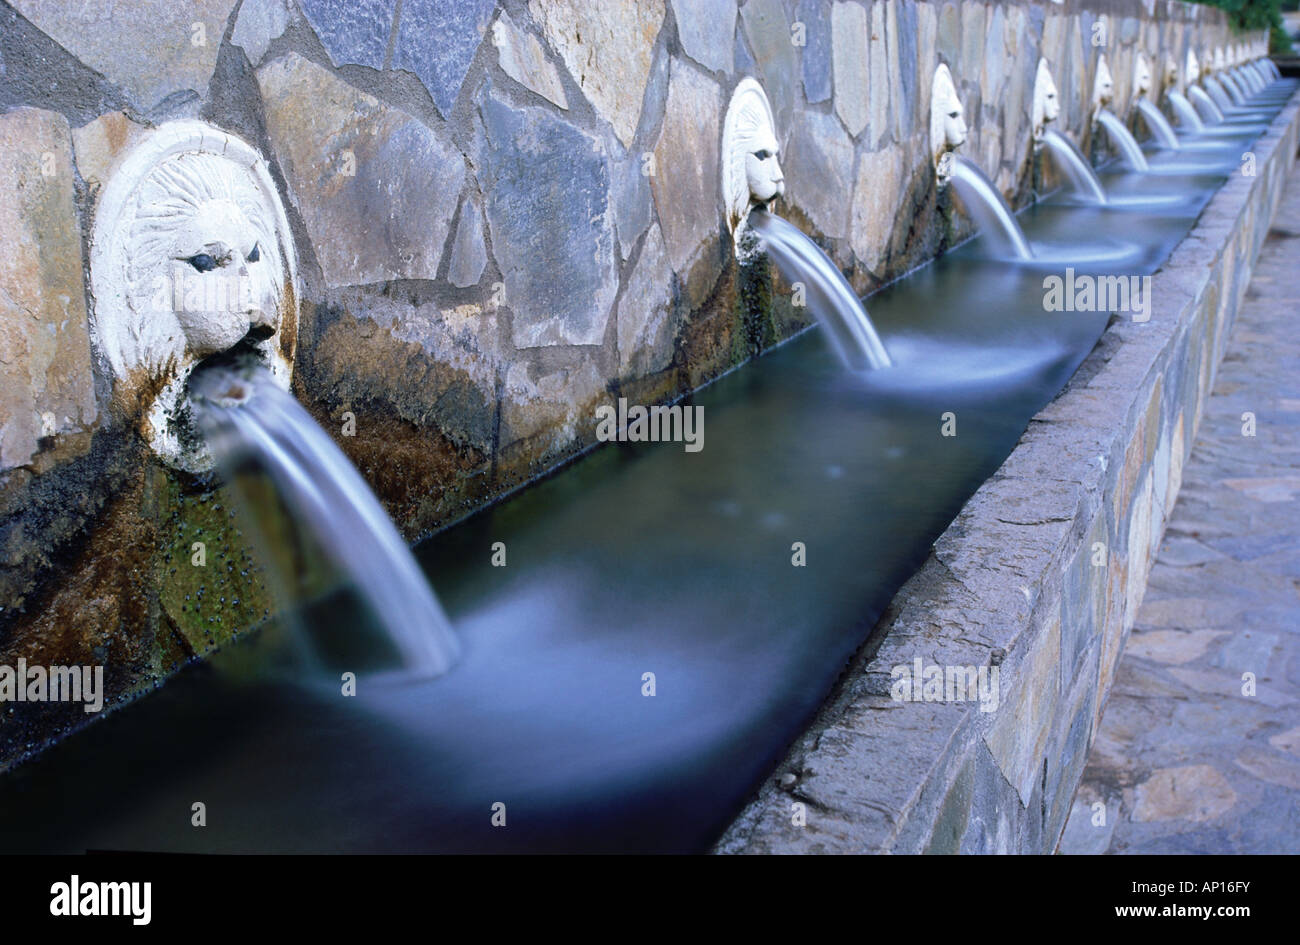 Fountain of the nineteen Waterspitters, Spili, Crete, Greece - Stock Image